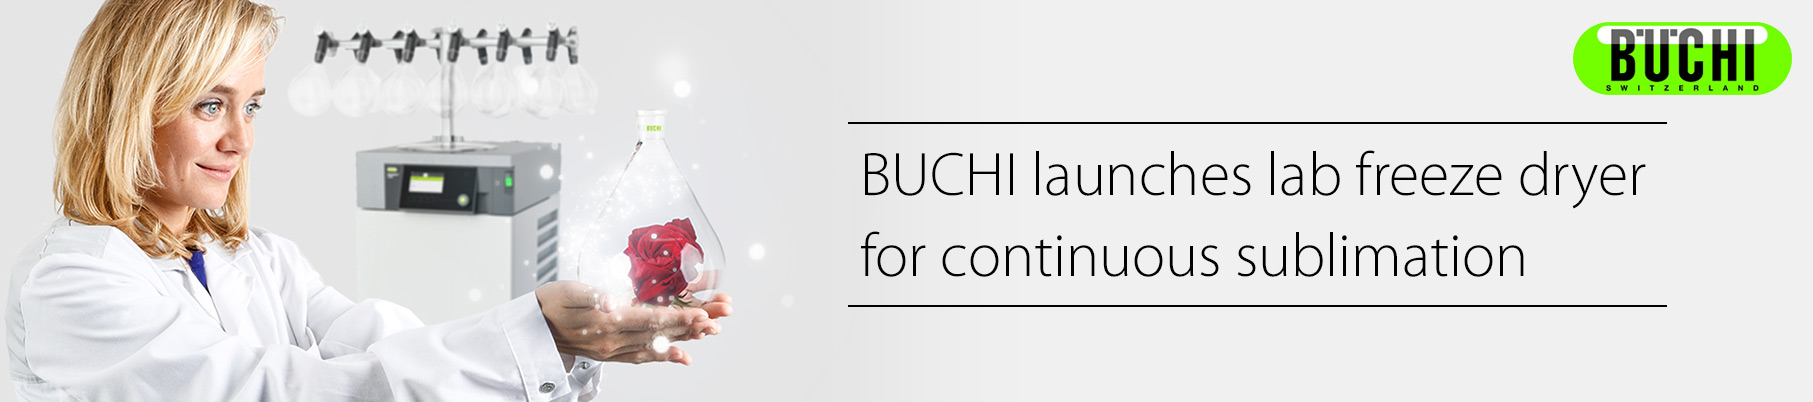 buchi lab freeze